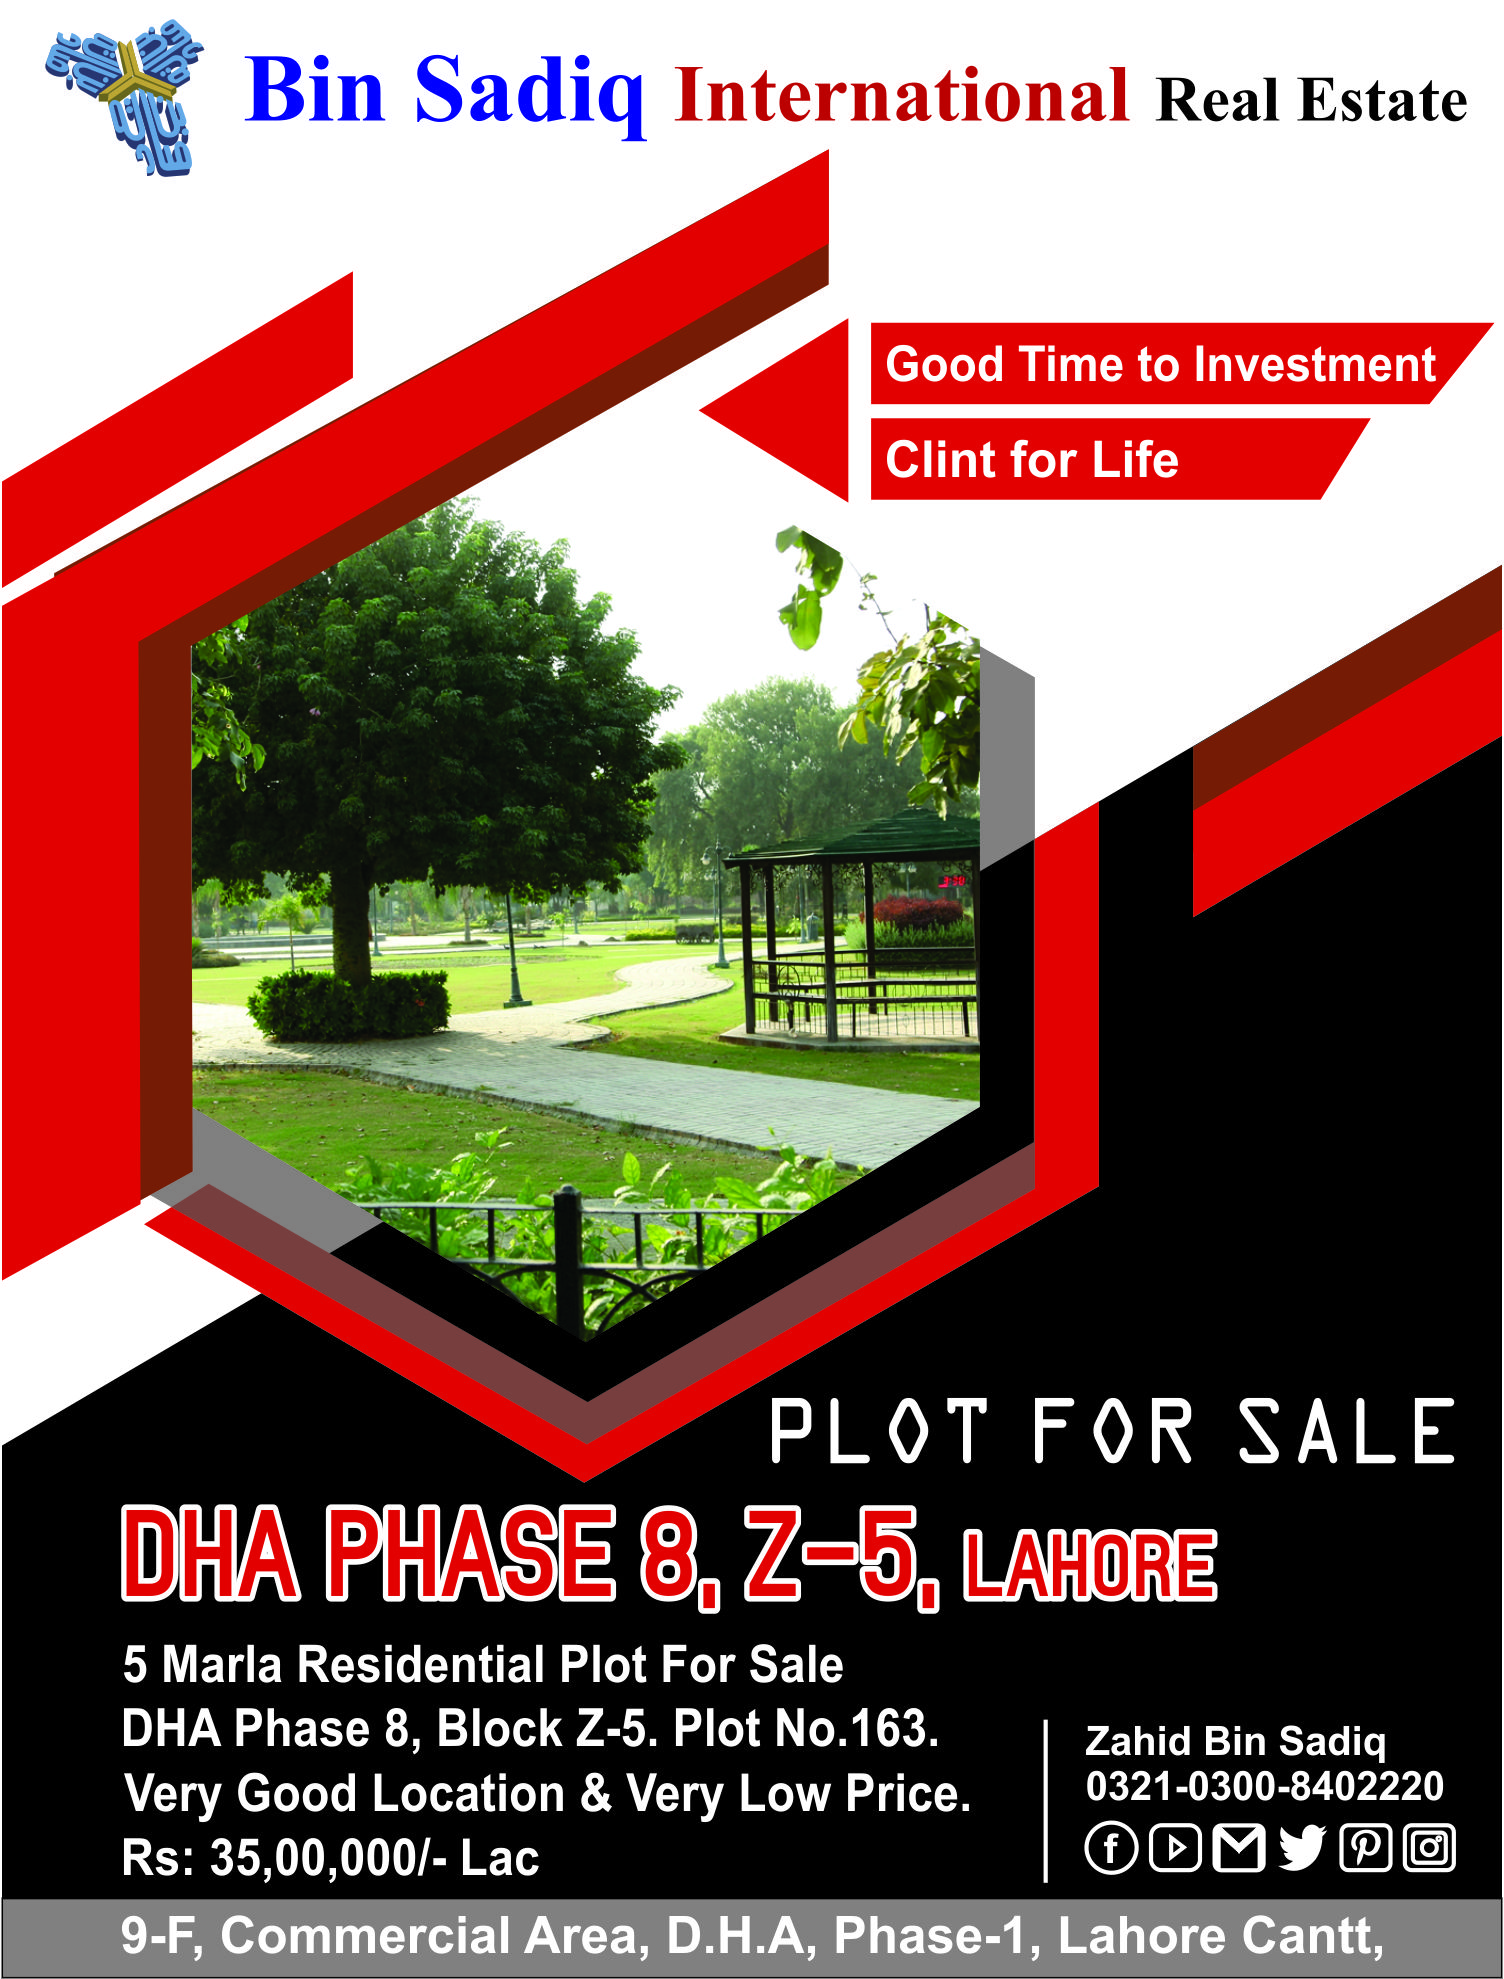 DHA Phase 8 Z5 Plot For Sale Very Good Location & Very Hot Price